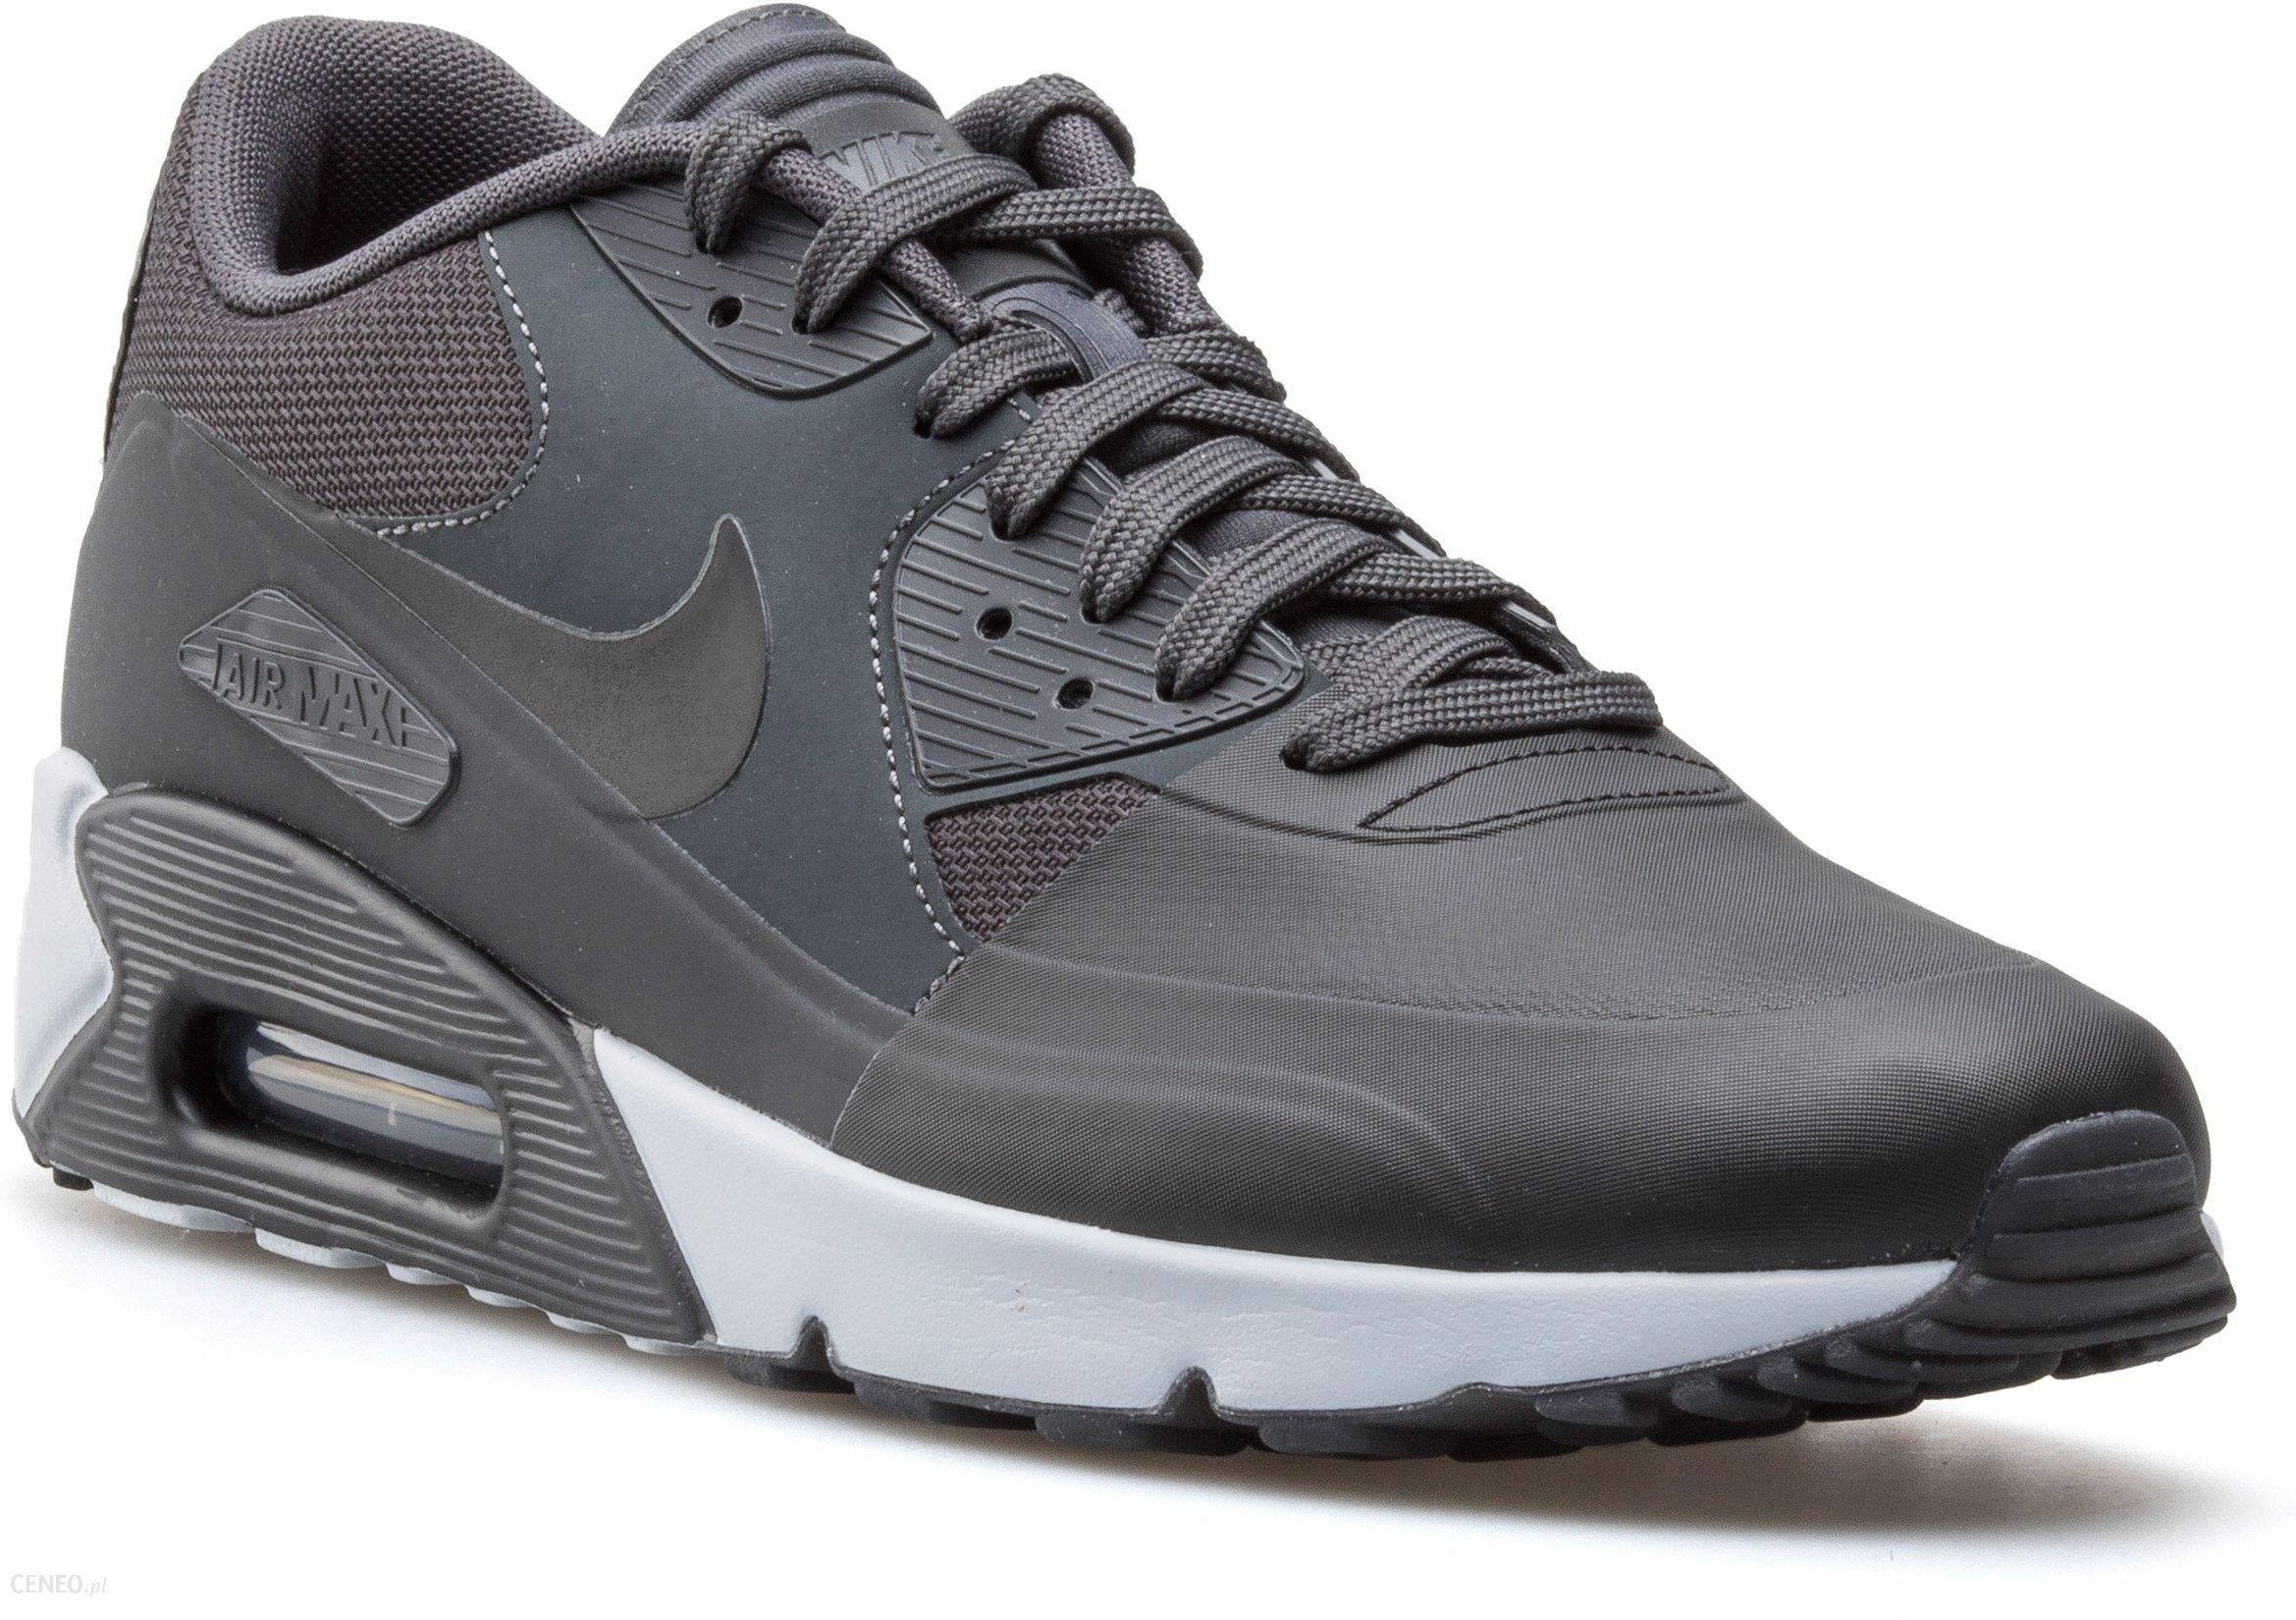 best service 6f65e 47a90 Buty Nike Air Max 90 Ultra 2.0 876005-003 r. 44,5 - Ceny i opinie ...